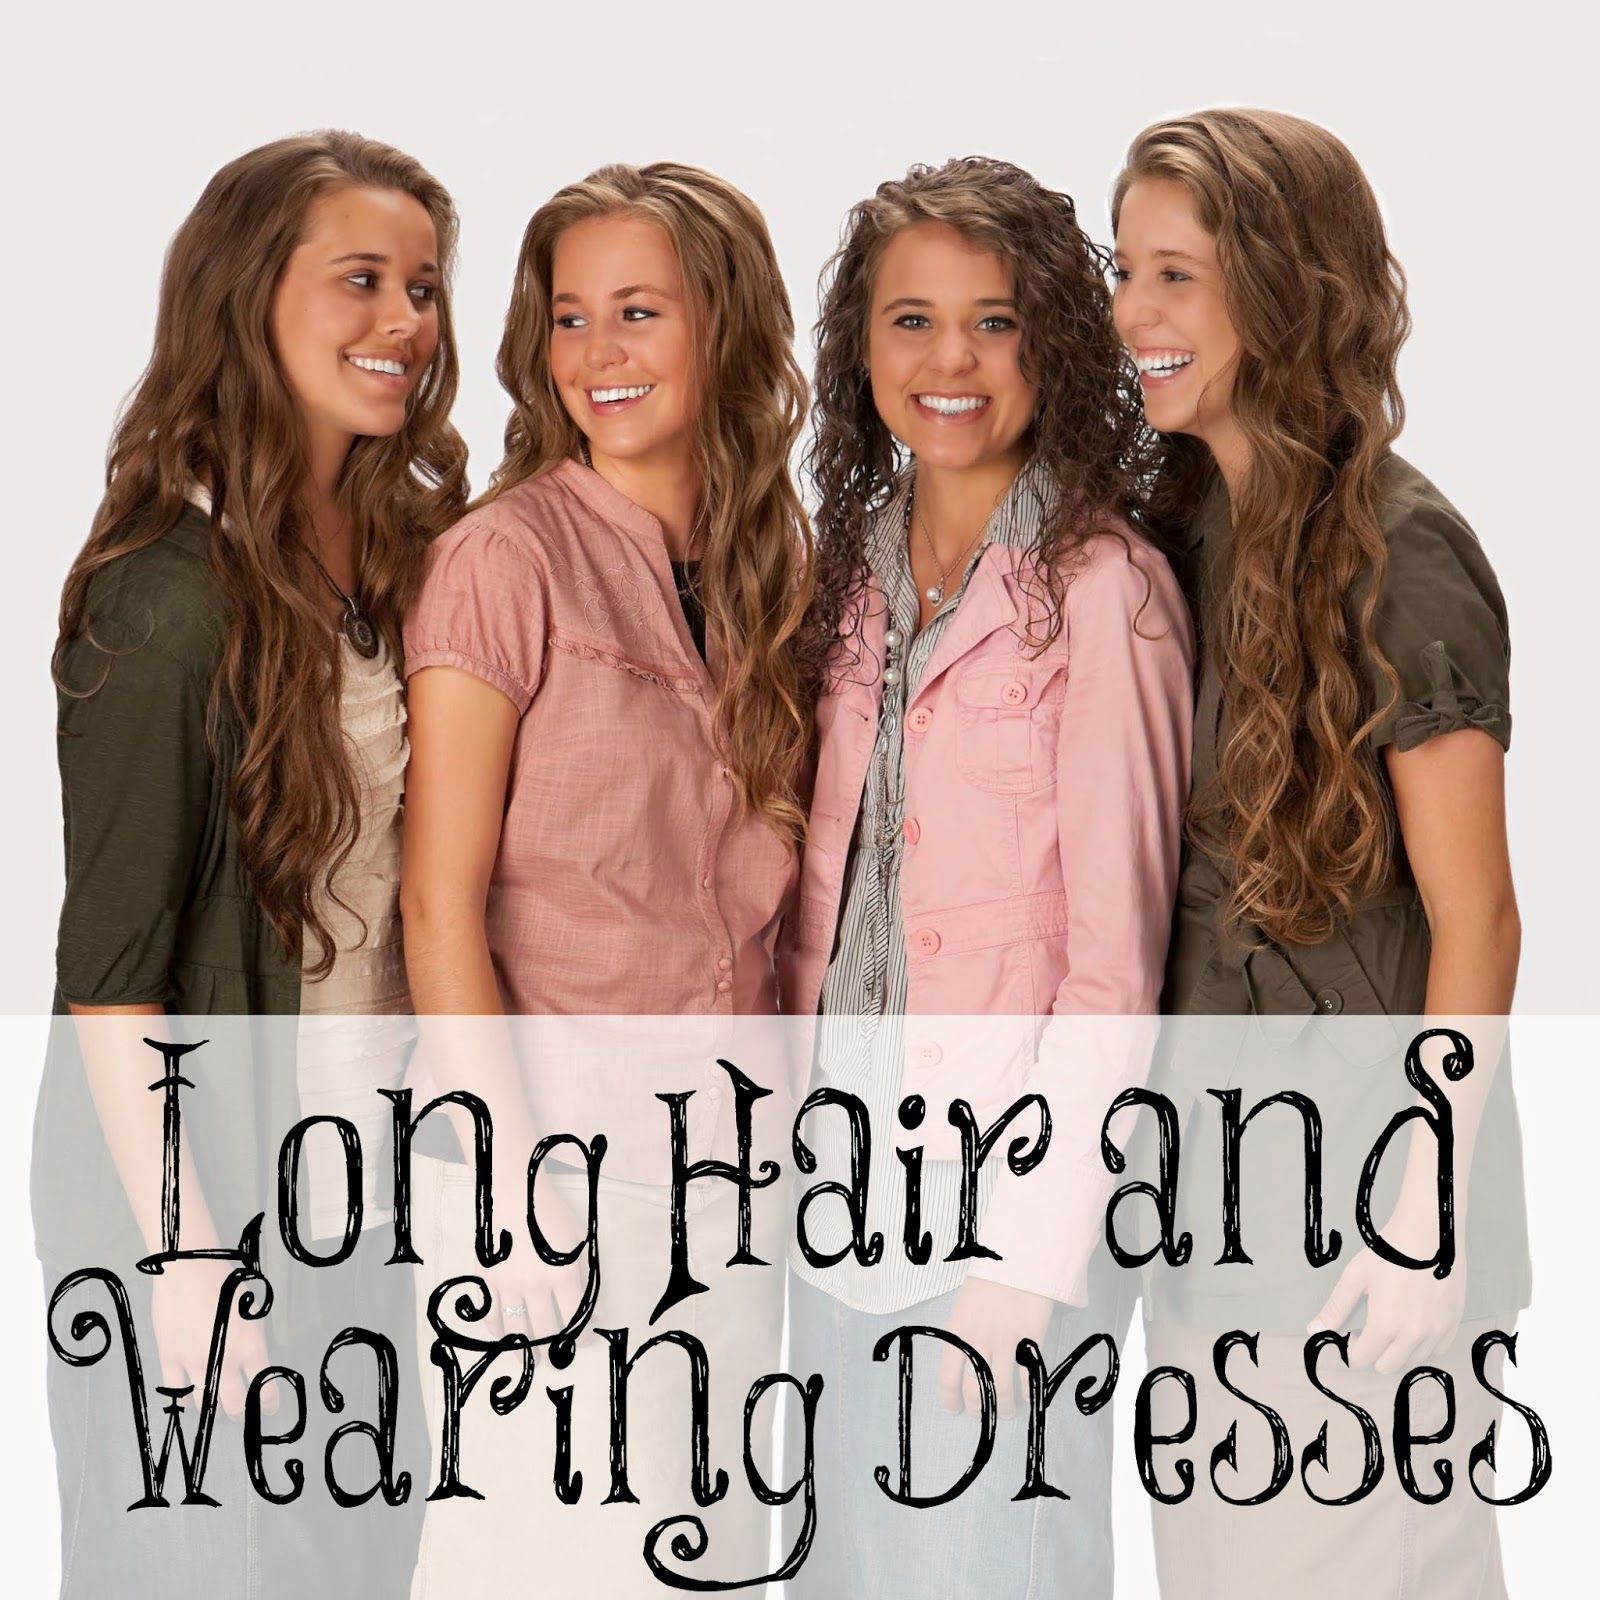 Are All Christian Woman Suppose To Have Long Hair And Wear